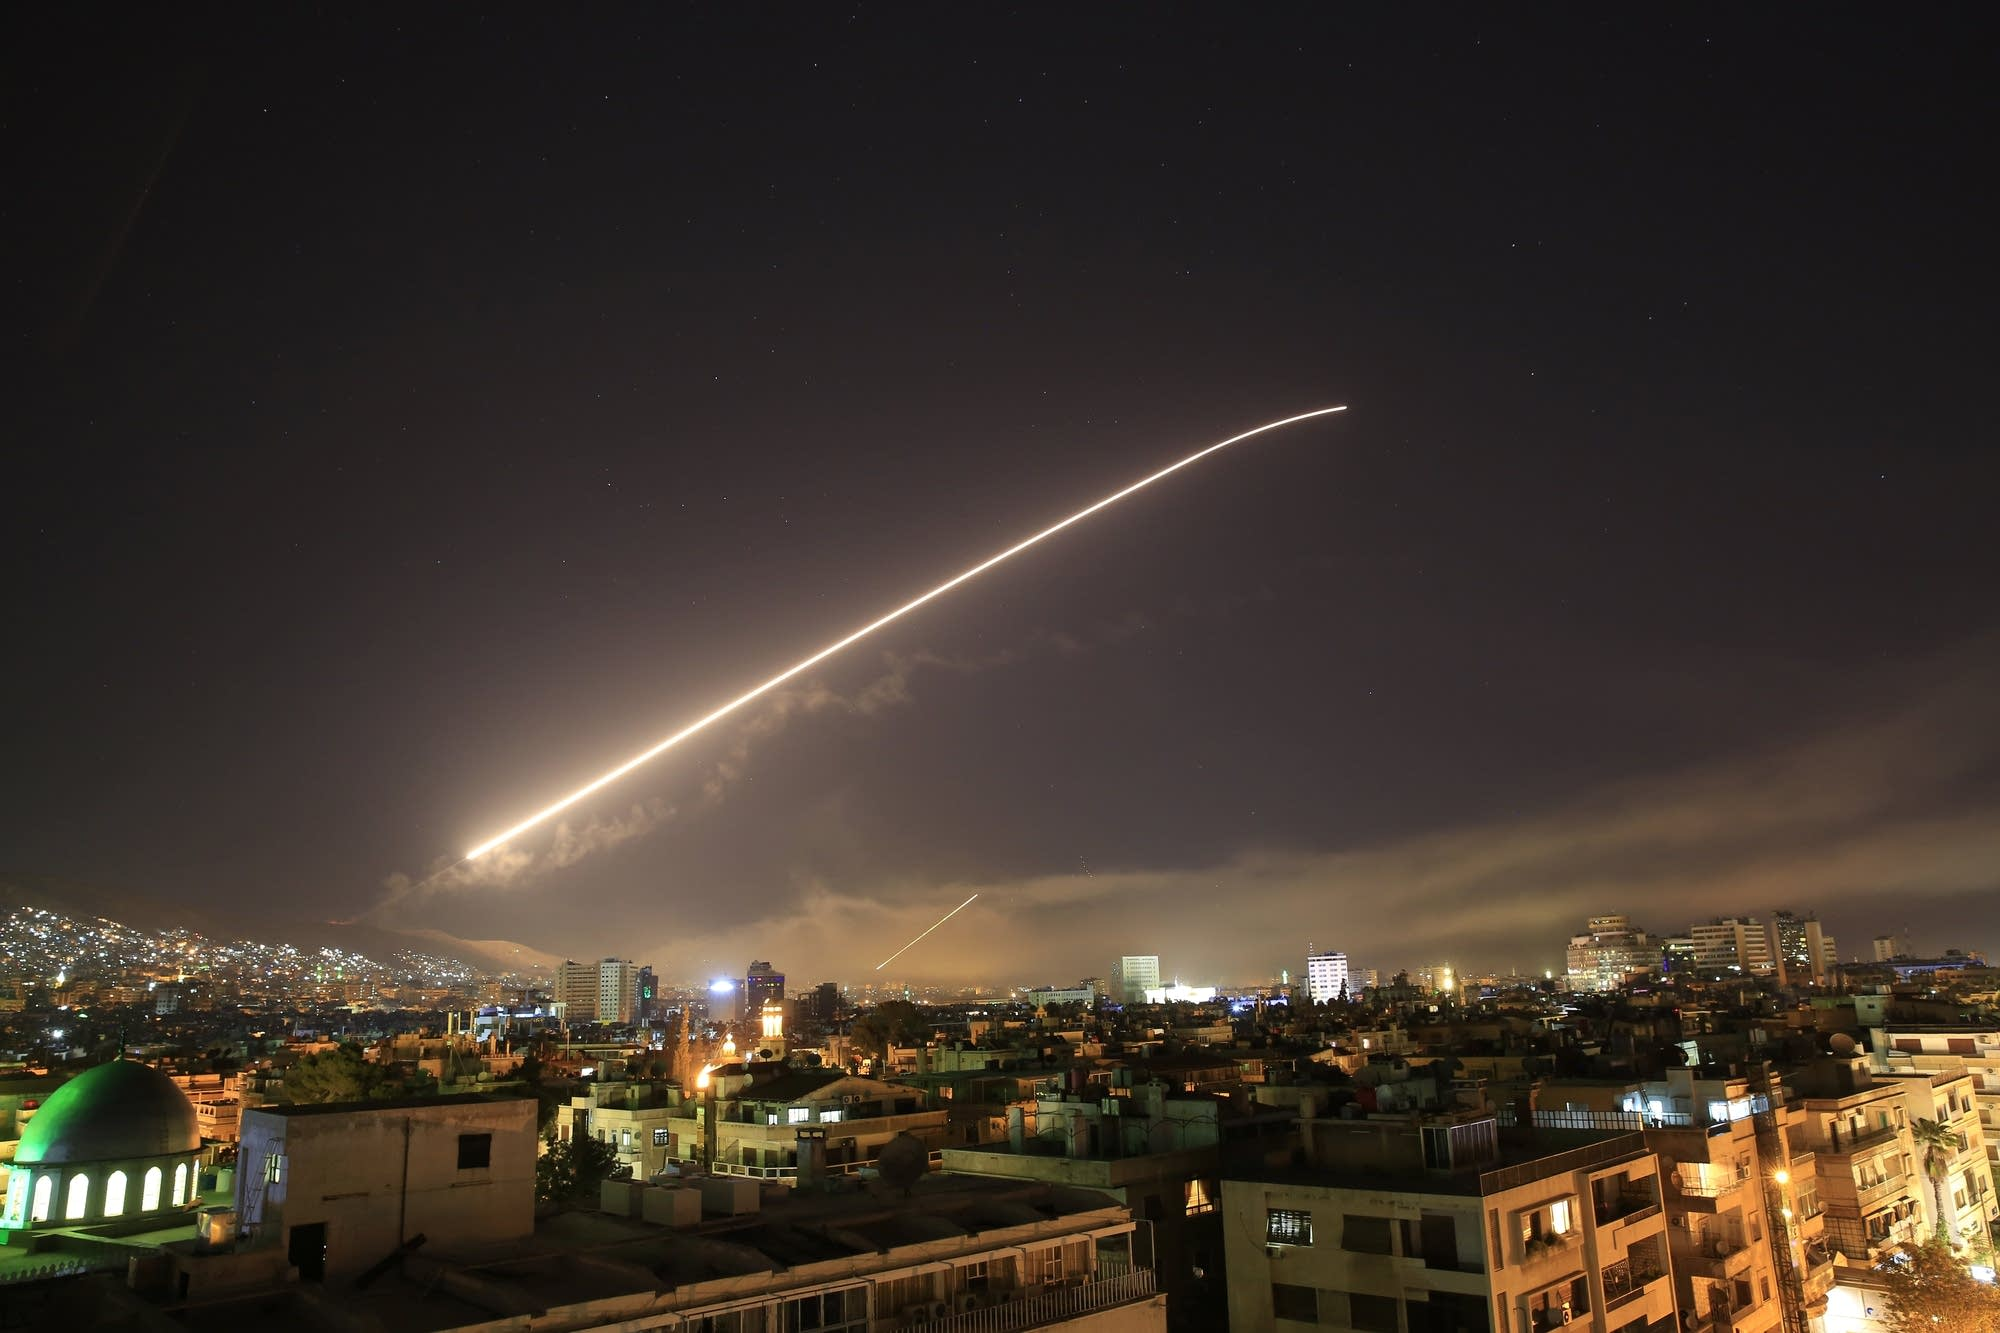 In Syria strike, the real danger is Russia - Peter Apps